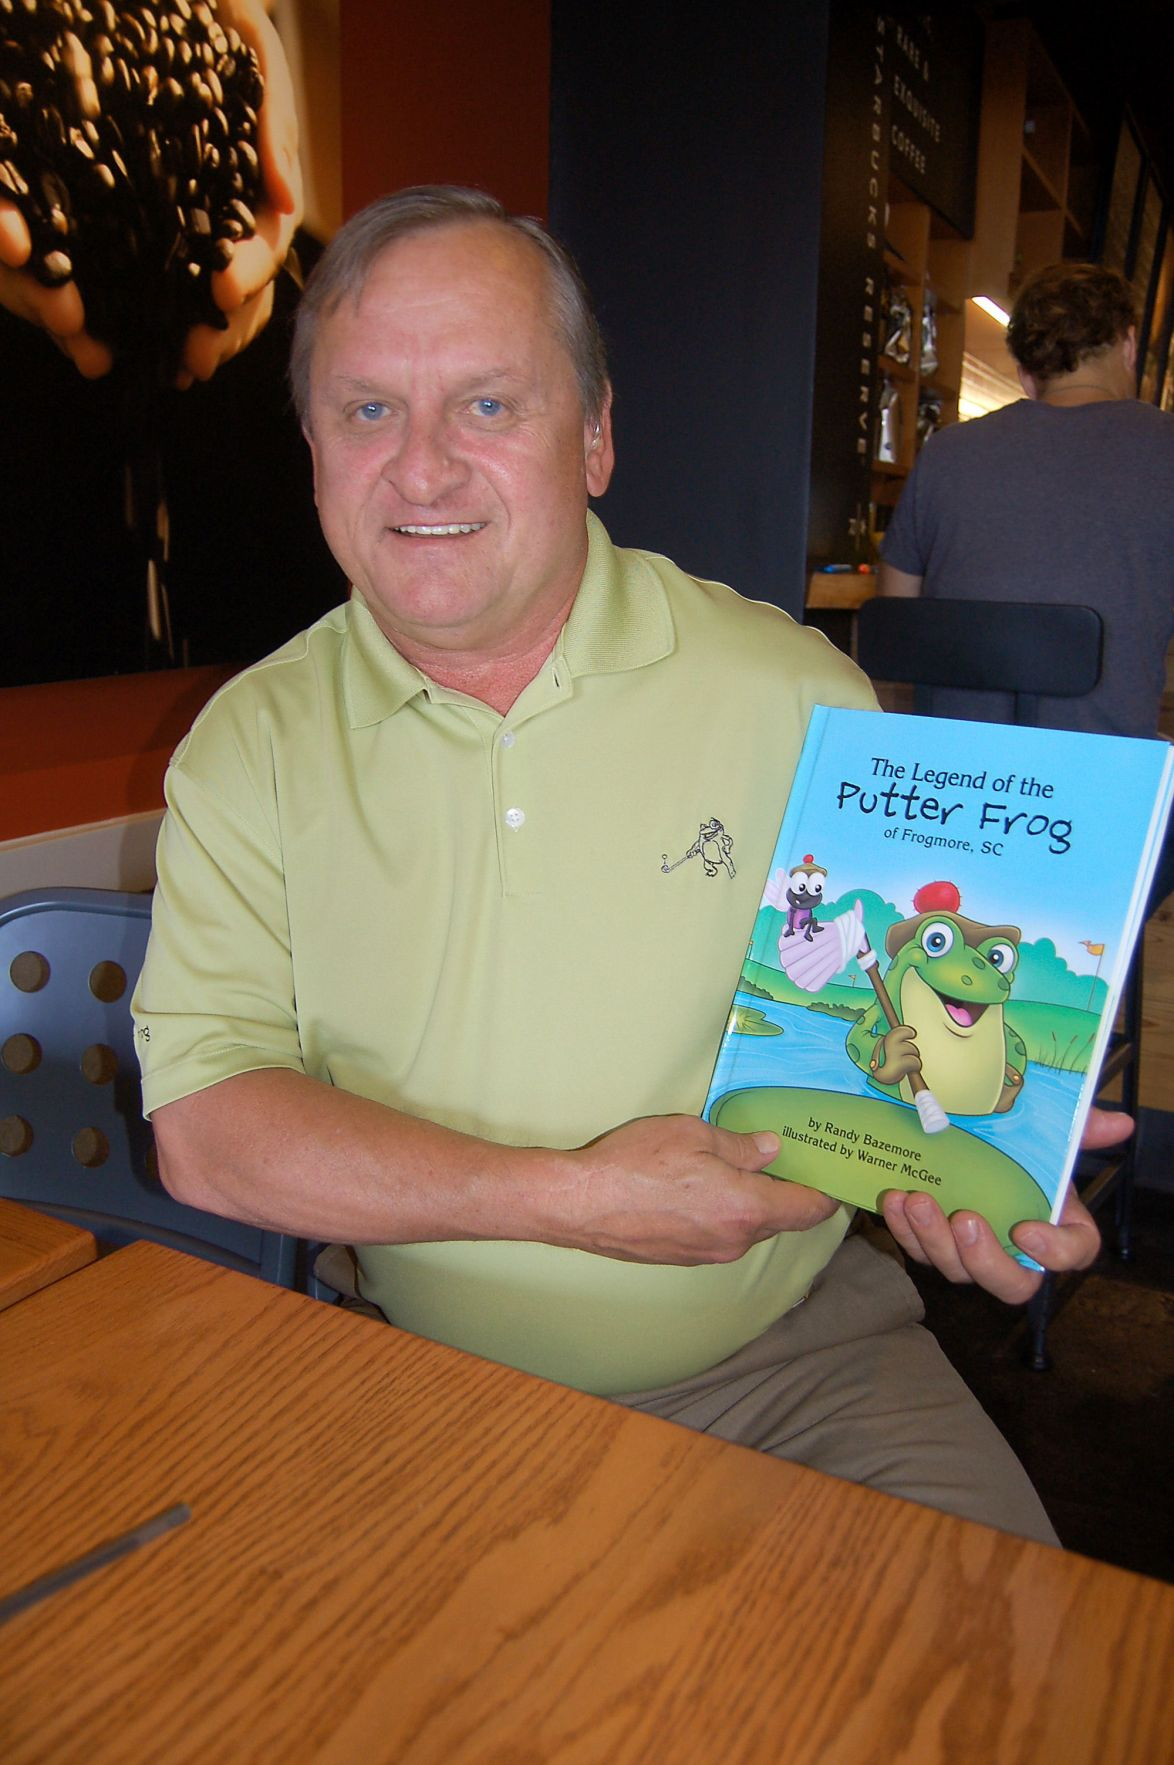 Real life experiences lead local Realtor to write The Putter Frog children's book